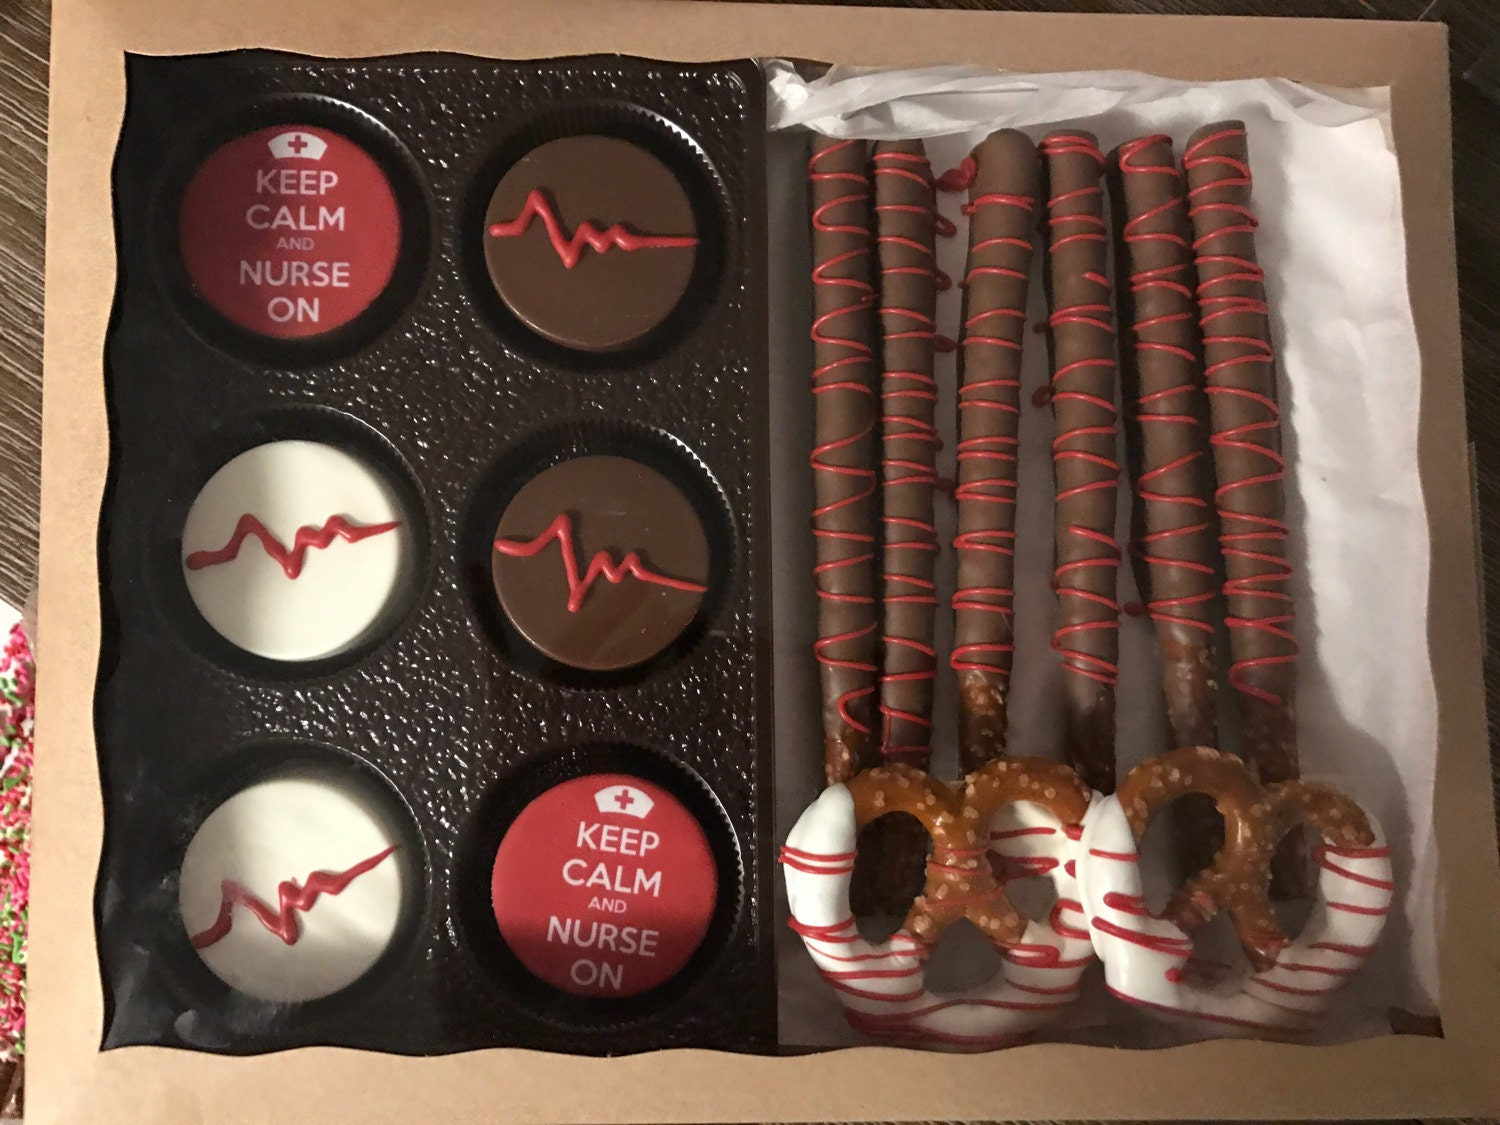 Nurse Gift Gourmet Chocolate Covered Pretzels Oreos Gift Box Nurse Doctor thank you gift